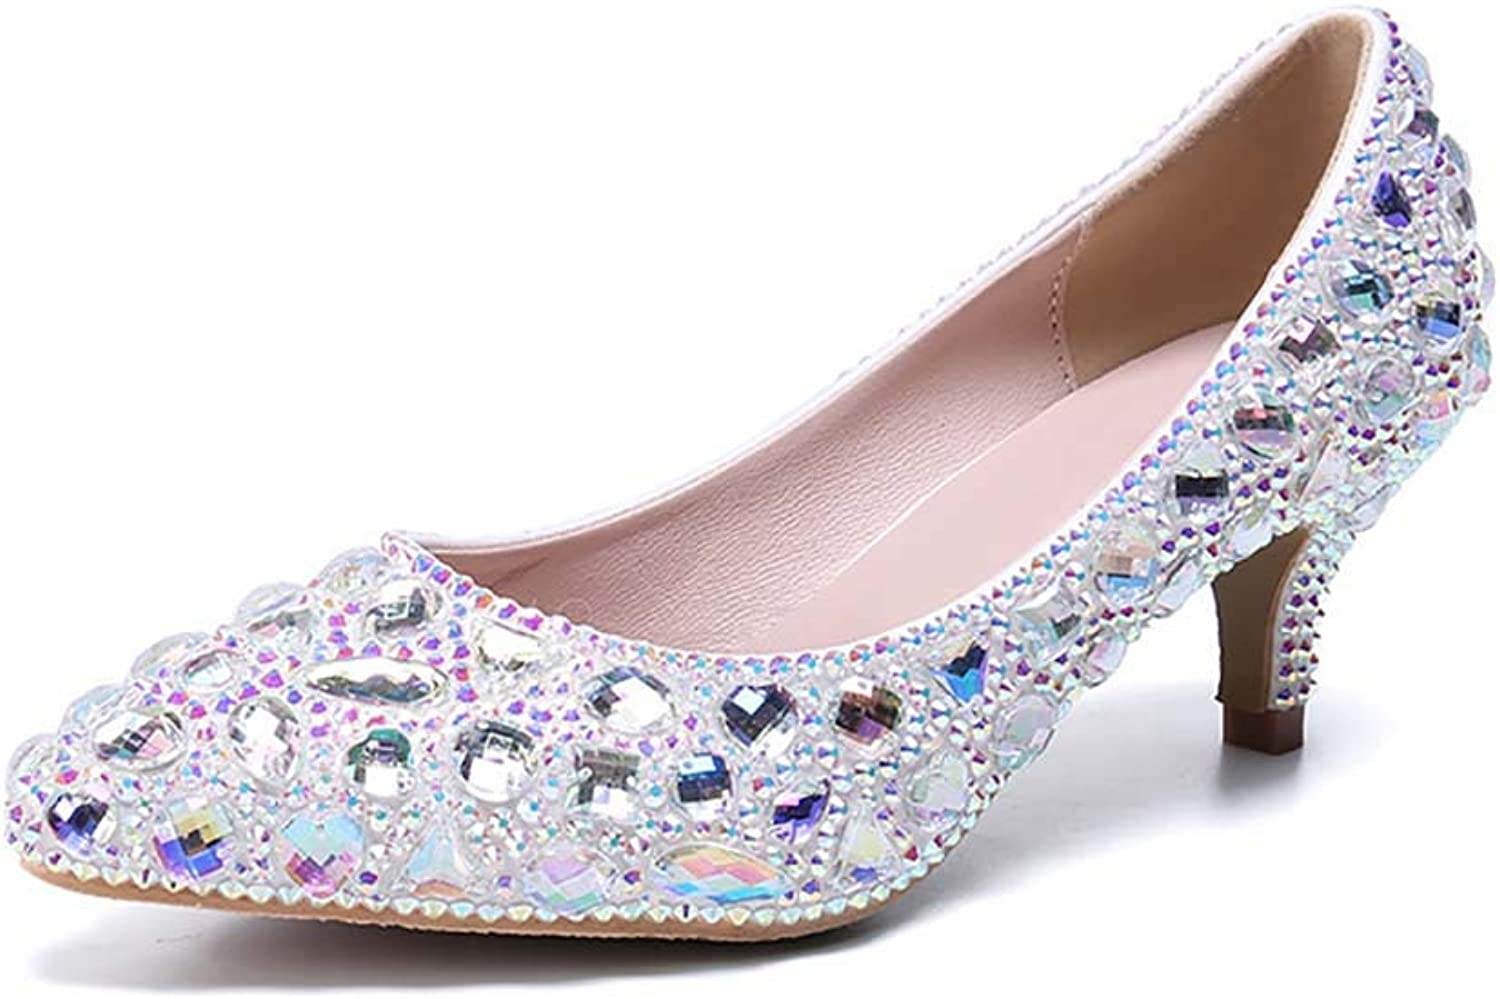 Women's Sequined Rhinestone Pointed Toe Kitten Heel Latin Ballroom Dance shoes Comfortable Wedding Sandals shoes